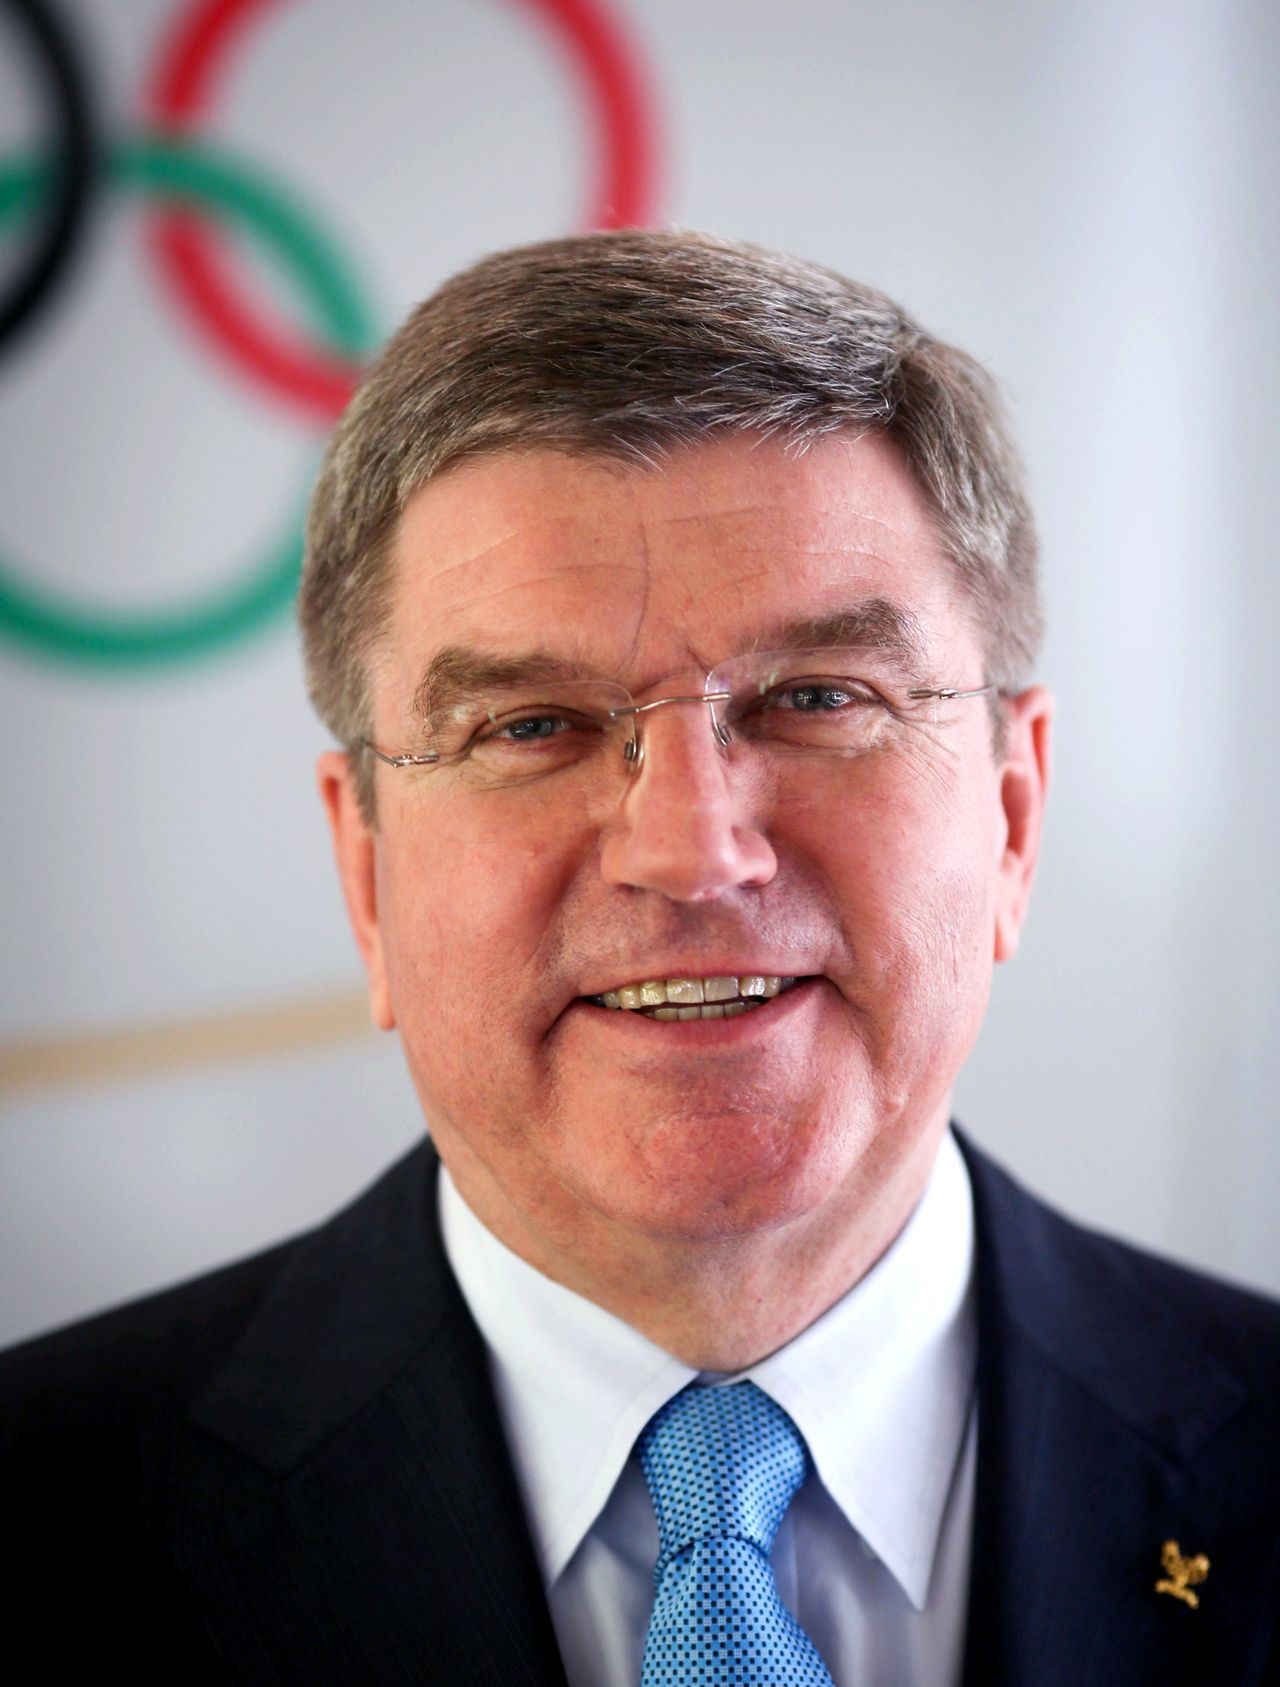 Thomas Bach, president of the German National Olympic Committee (Deutscher Olympischer Sportbund, DOSB) and vice-president of the International Olympic Committee (IOC), poses in front of the Olympic rings prior to a press conference in Frankfurt am Main, western Germany, on May 9, 2013. Bach will run for the office of the IOC's president. AFP PHOTO / FRANK RUMPENHORST / GERMANY OUT